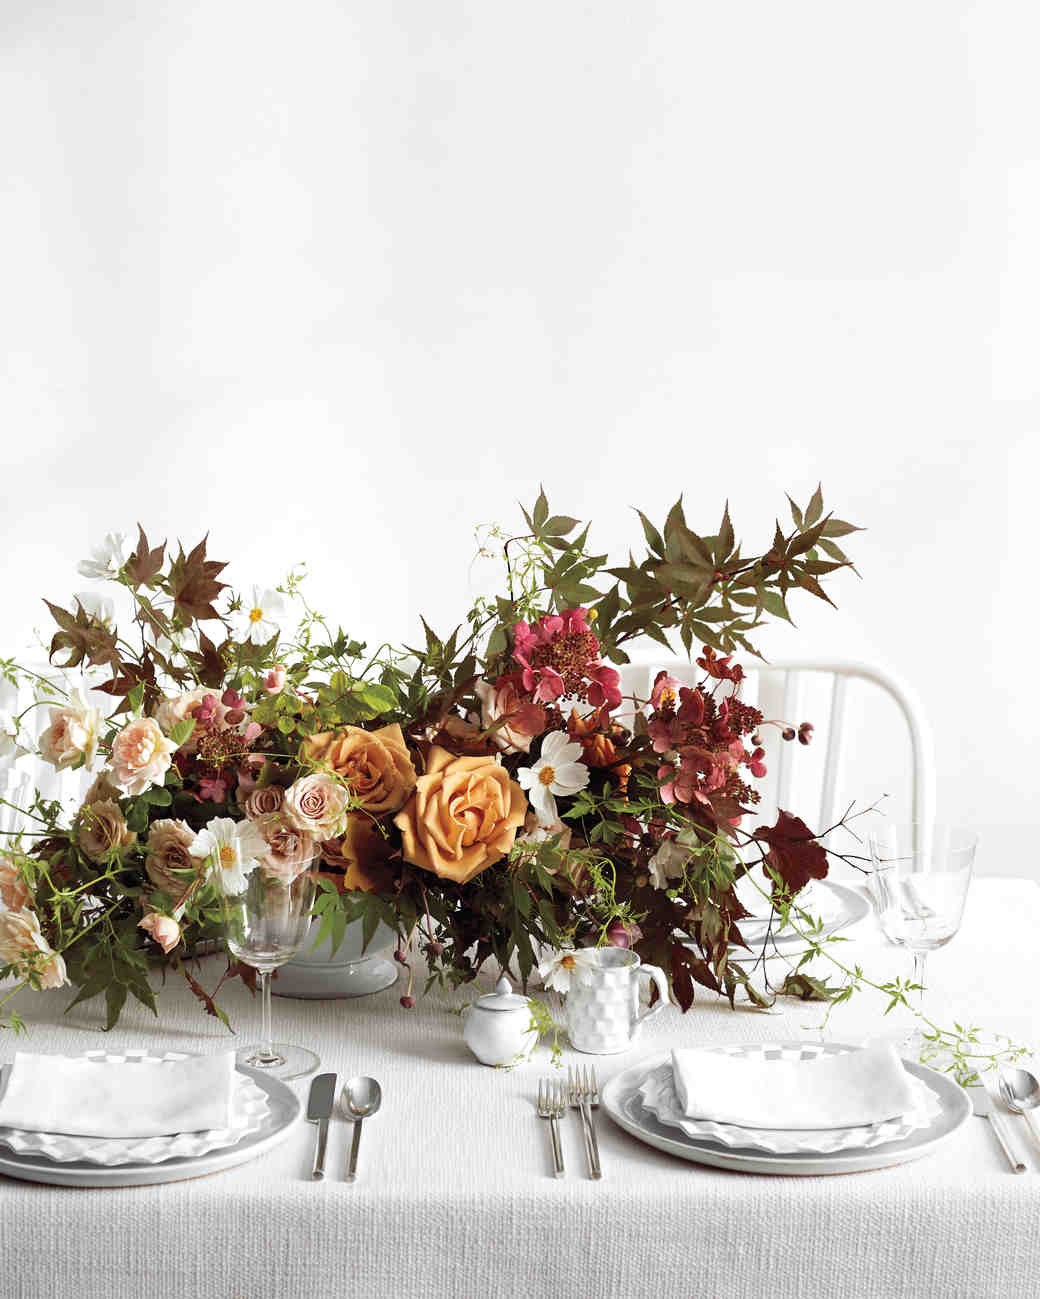 table-centerpiece-298-d111585.jpg